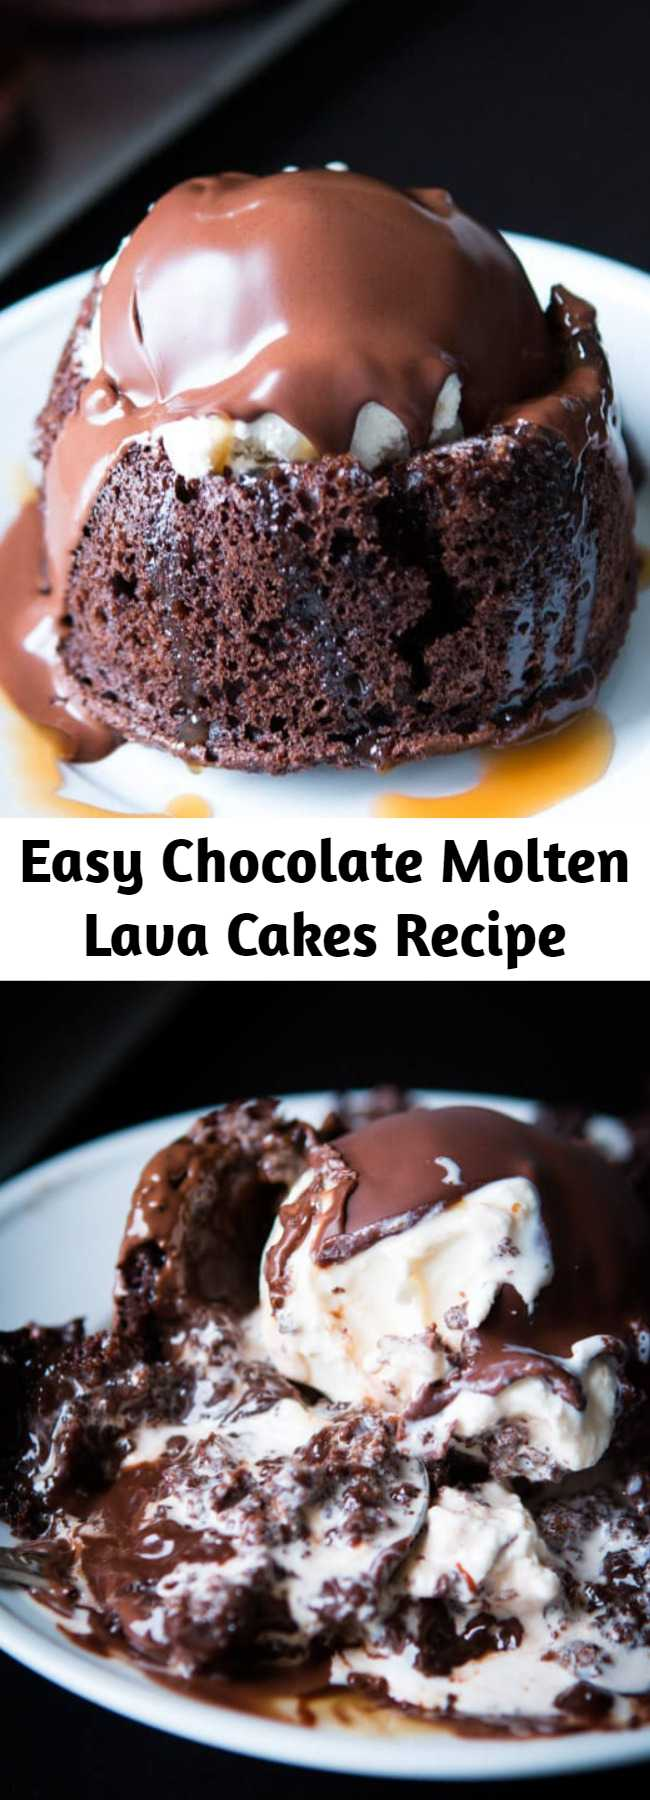 Easy Chocolate Molten Lava Cakes Recipe - Homemade molten lava cakes are way easier to make than you'd think, and that hot fudge oozing out is such a crowd pleaser! Don't forget to serve with a scoop of ice cream!